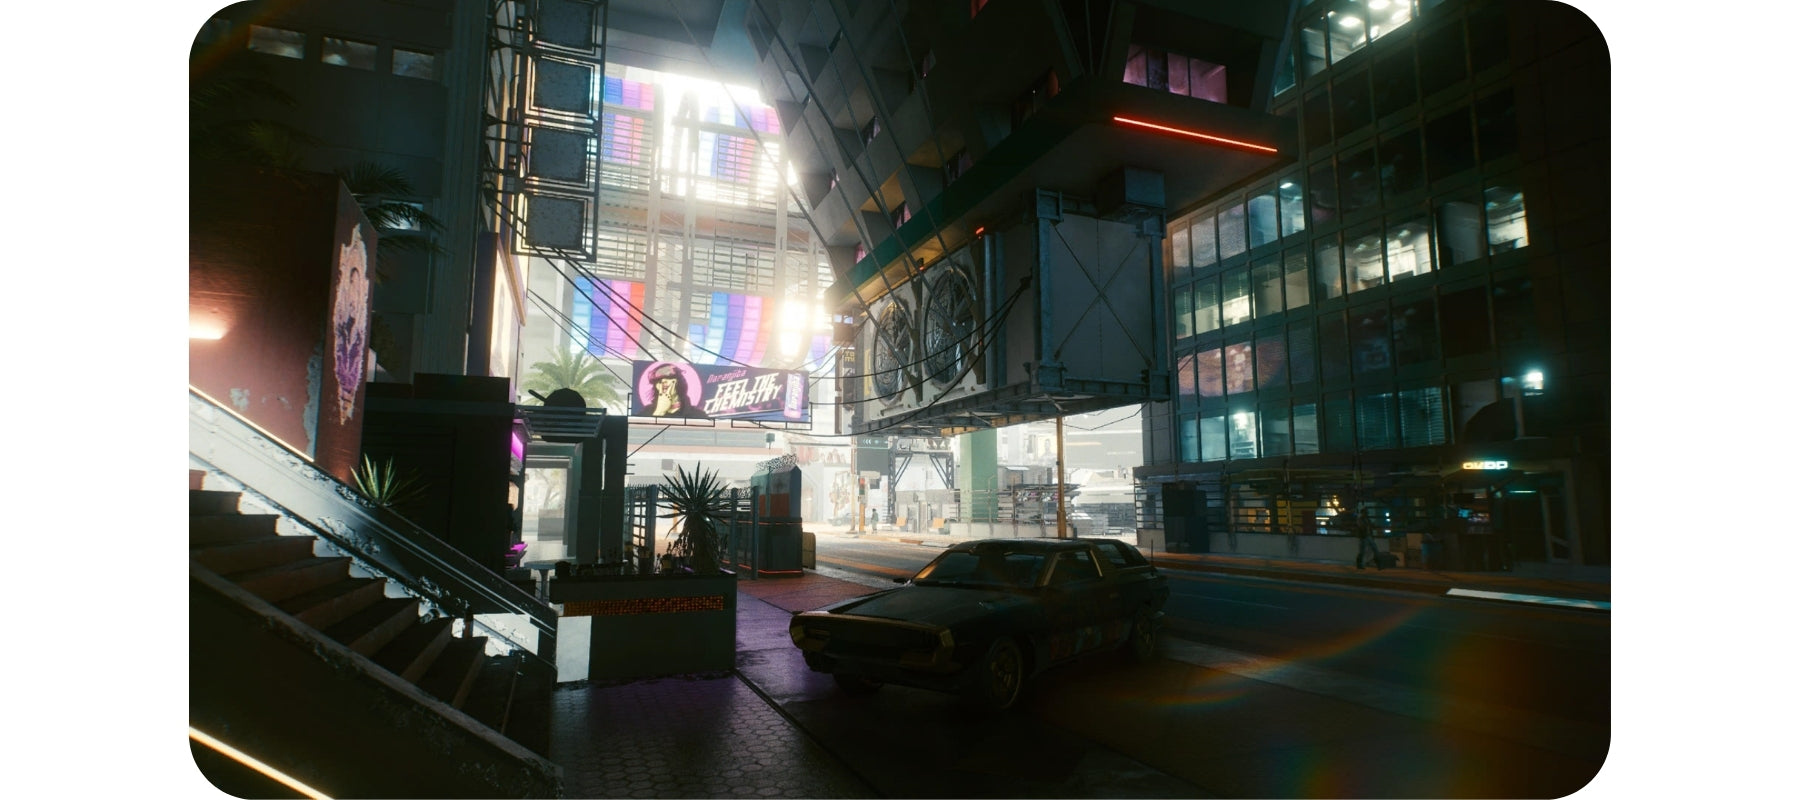 Playing Cyberpunk 2077 for long hours.